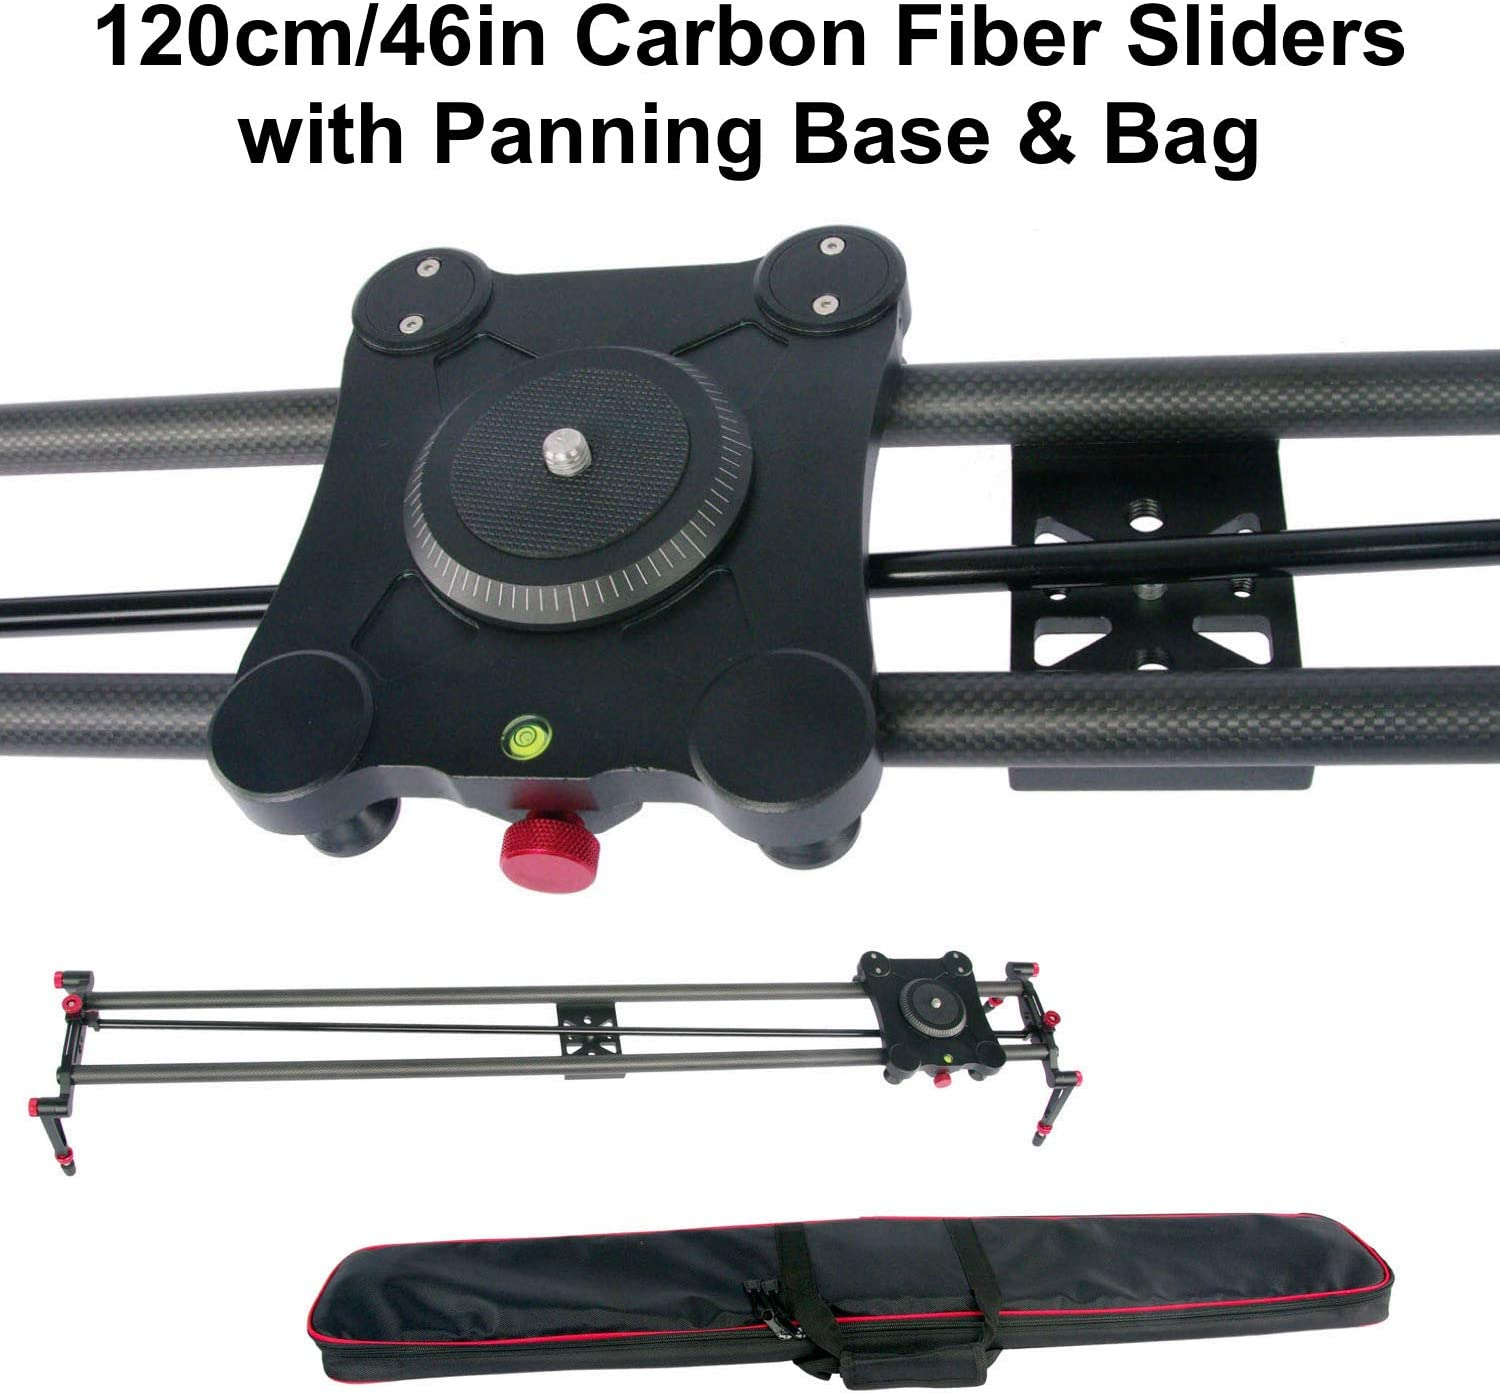 GTX Studio Carbon Fiber Slider with FF Pan 120cm//47in